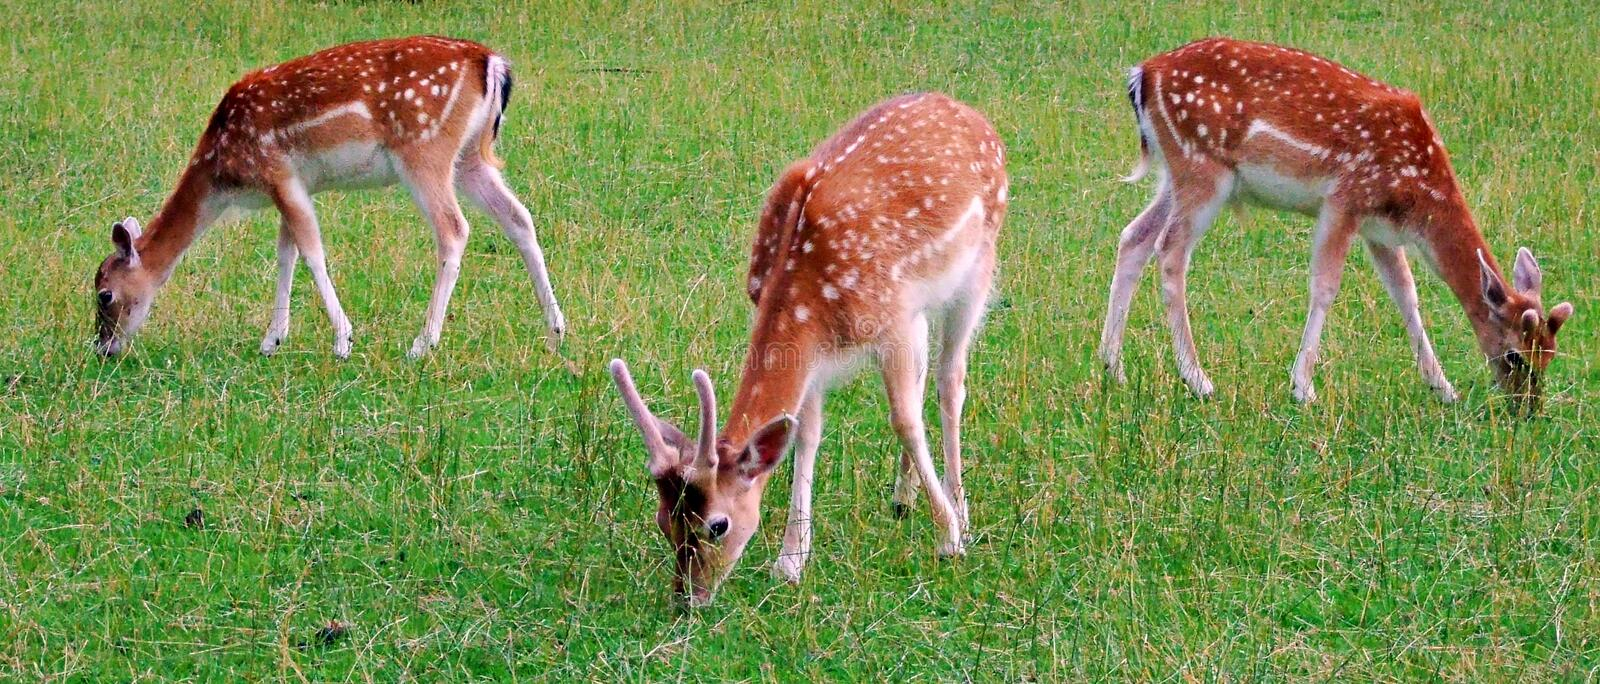 Deer, animal, wildlife, mammal, fawn, grass, wild, nature, fallow, doe, young, brown, green, antlers, stag, baby, animals,. Forest, buck, spotted, park, spots royalty free stock image